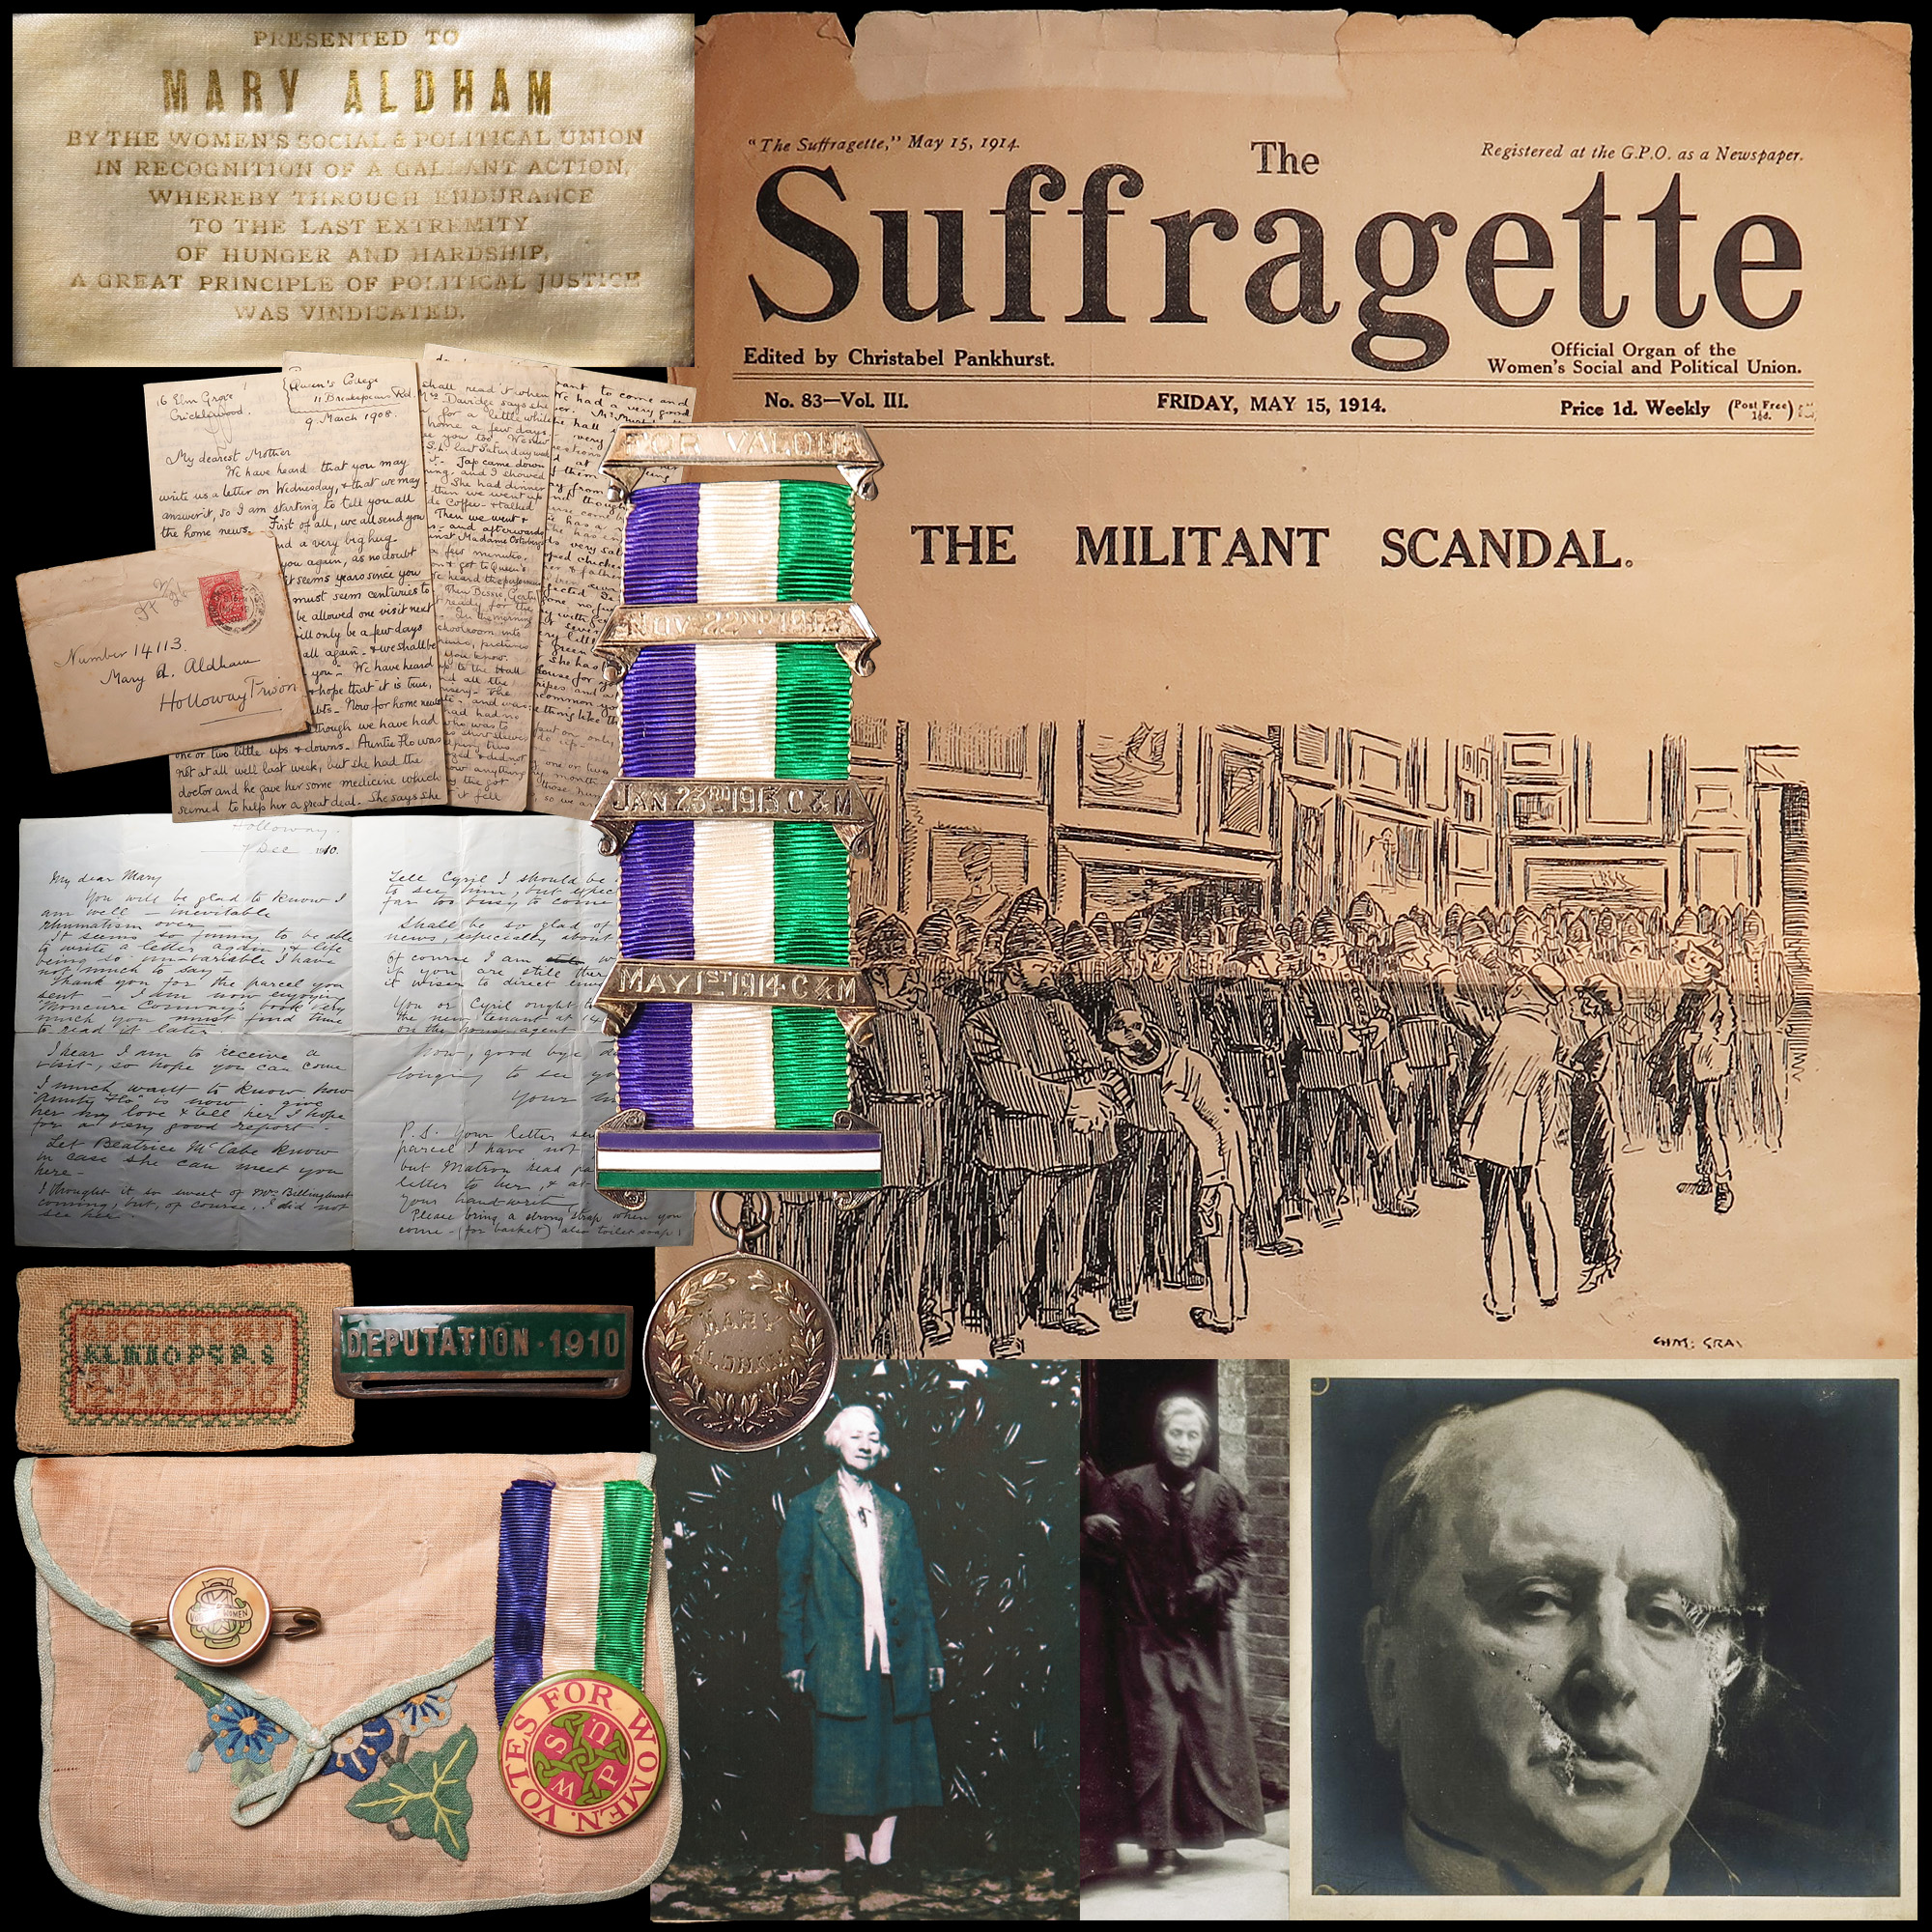 Lot 693 - Suffragette Medal with original named fitted case awarded to Mary Aldham. The medal engraved to Mary